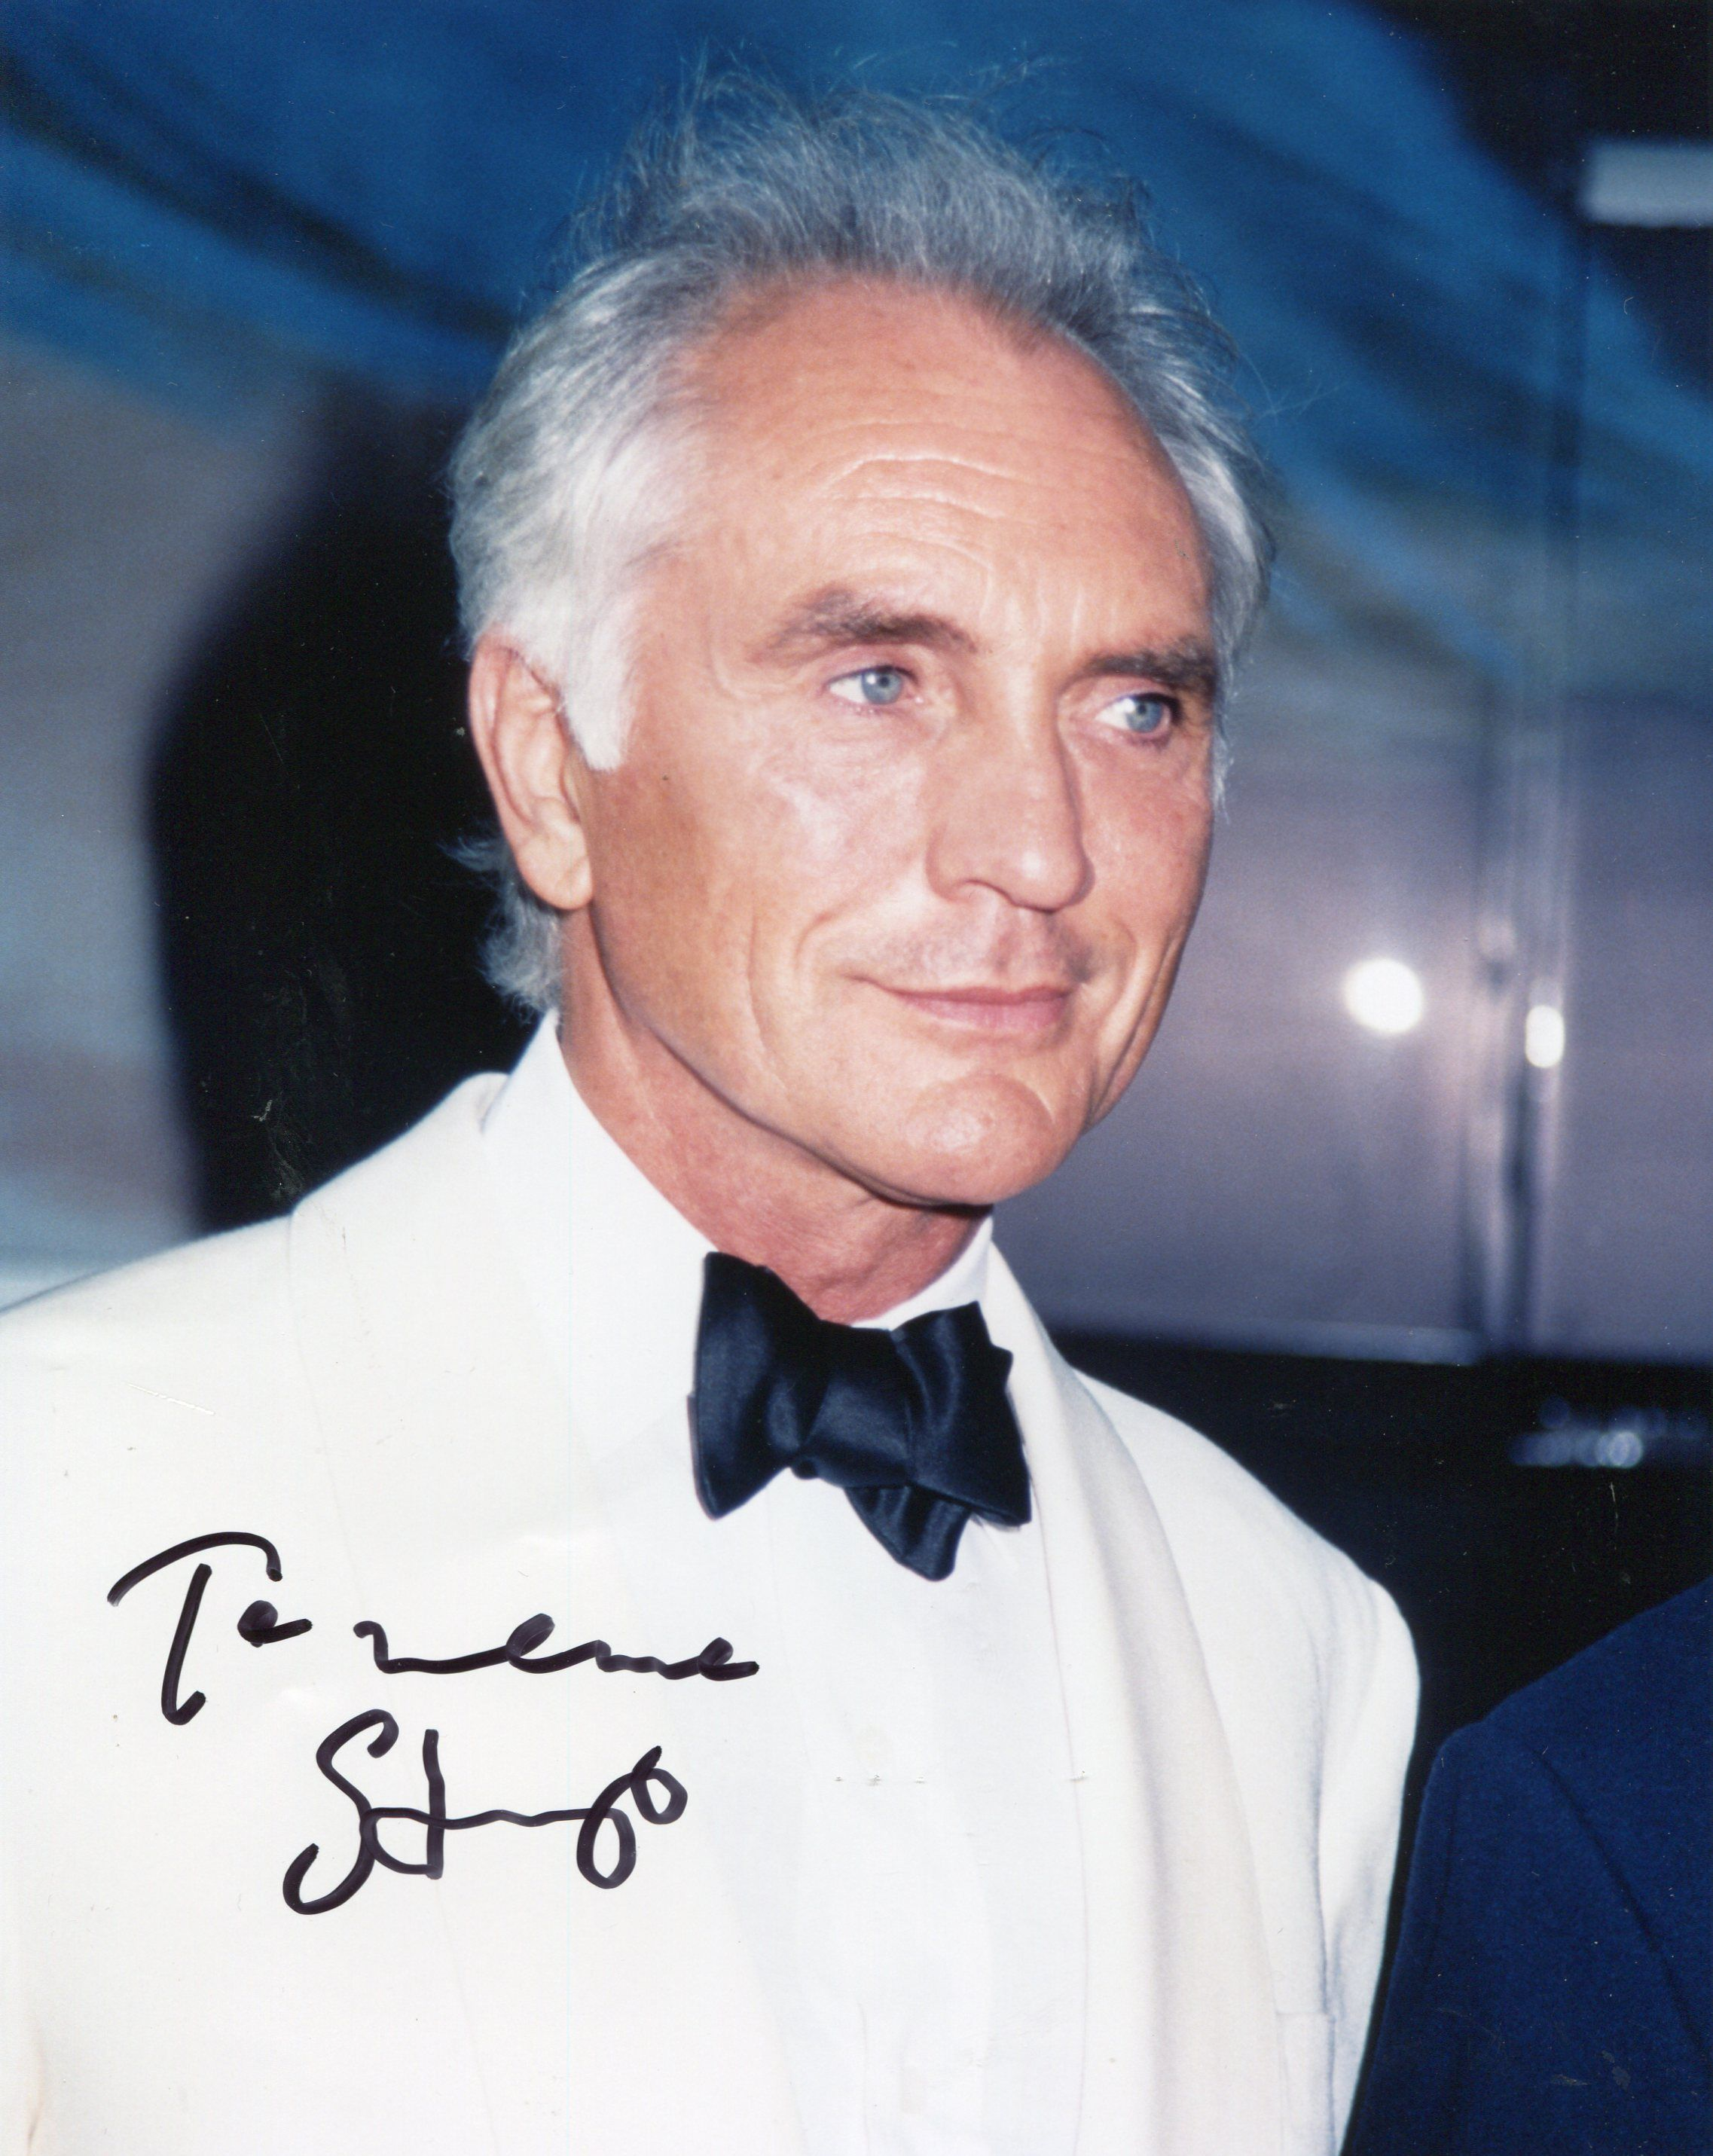 Watch Terence Stamp (born 1938) video